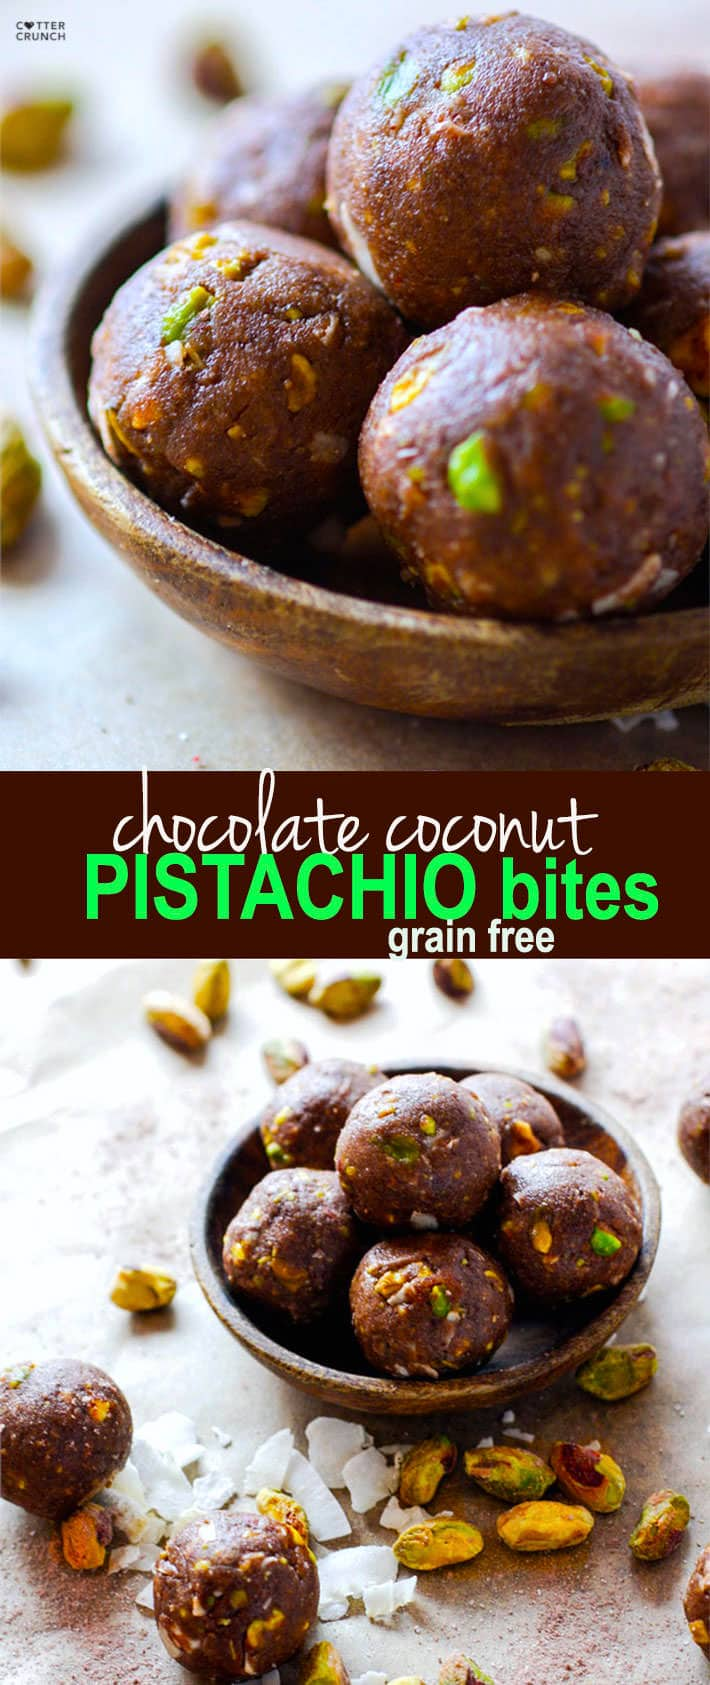 Paleo and Vegan friendly Dark Chocolate Coconut Pistachio bites! A crunchy, lightly sweet, delicious snack BITE that requires no baking! These little chocolate bites are naturally sweetened and packed healthy fats! @cottercrunch